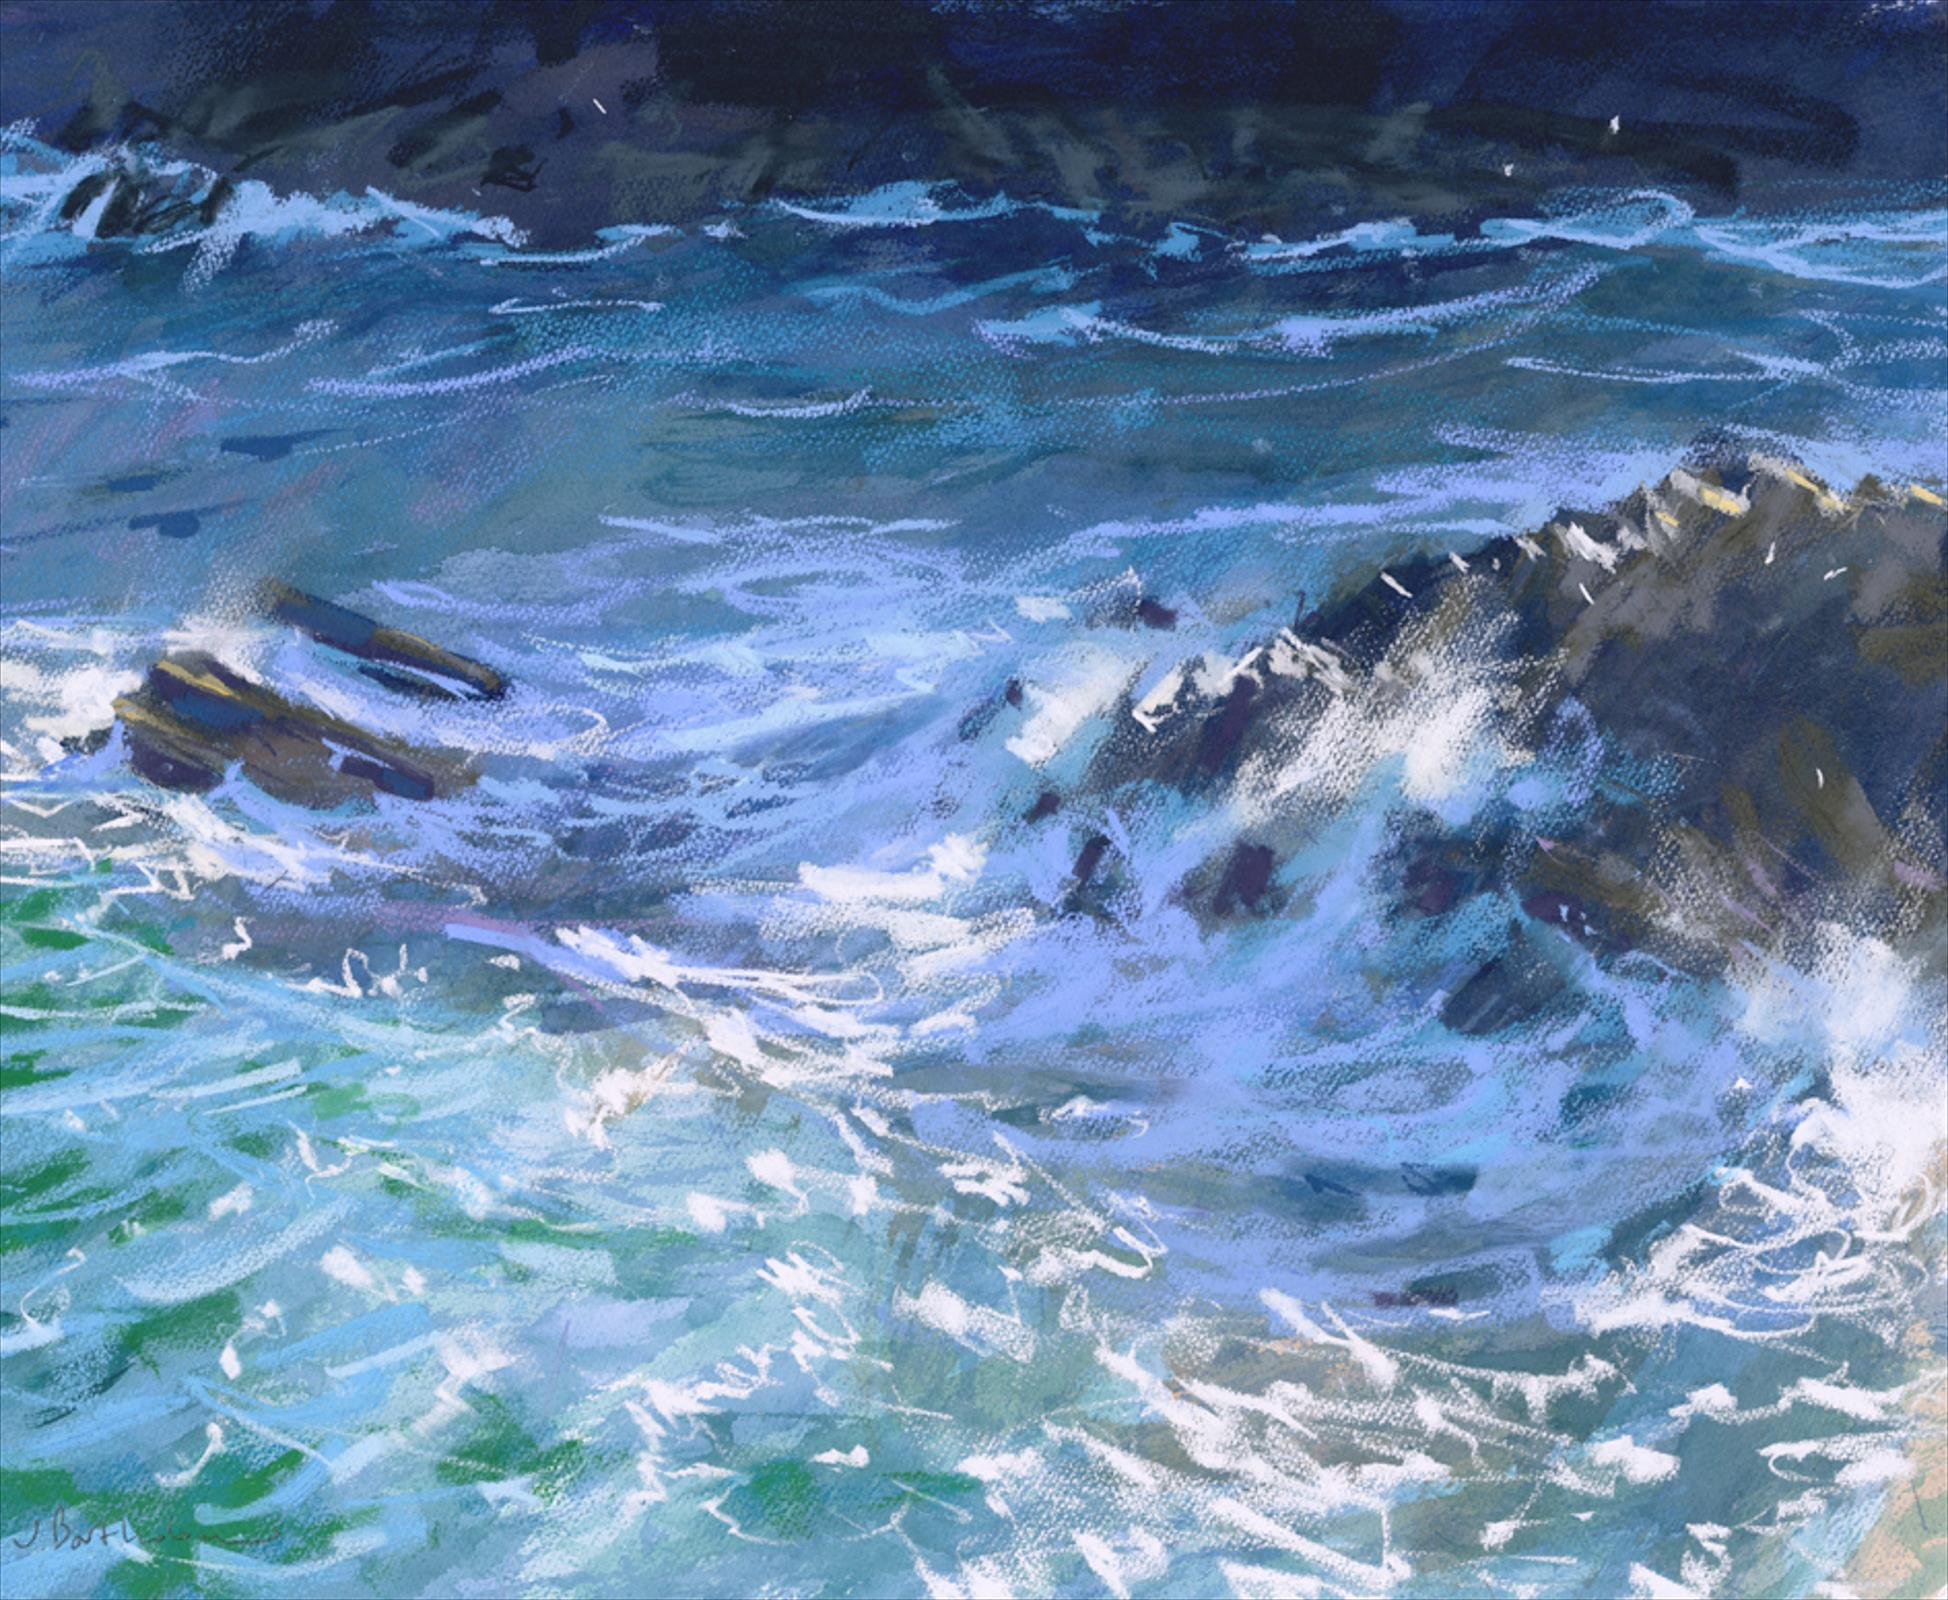 James Bartholomew Swell at Cadgwith Cove